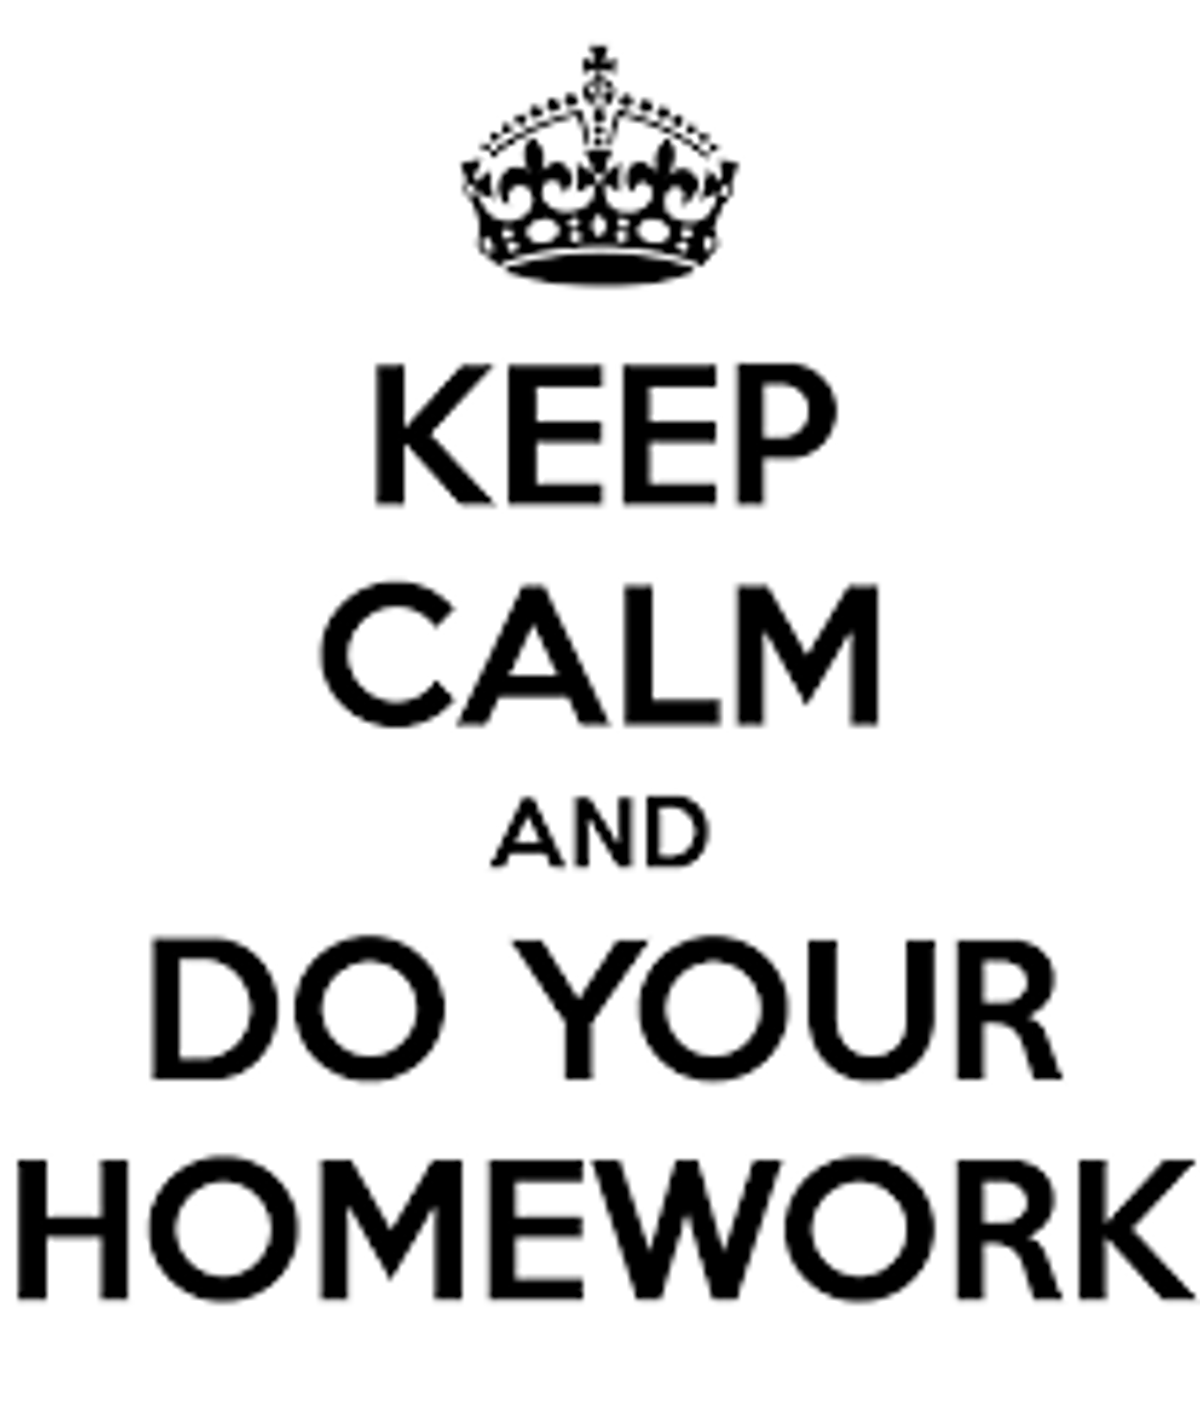 15 Things I'd Rather Be Doing Than Homework